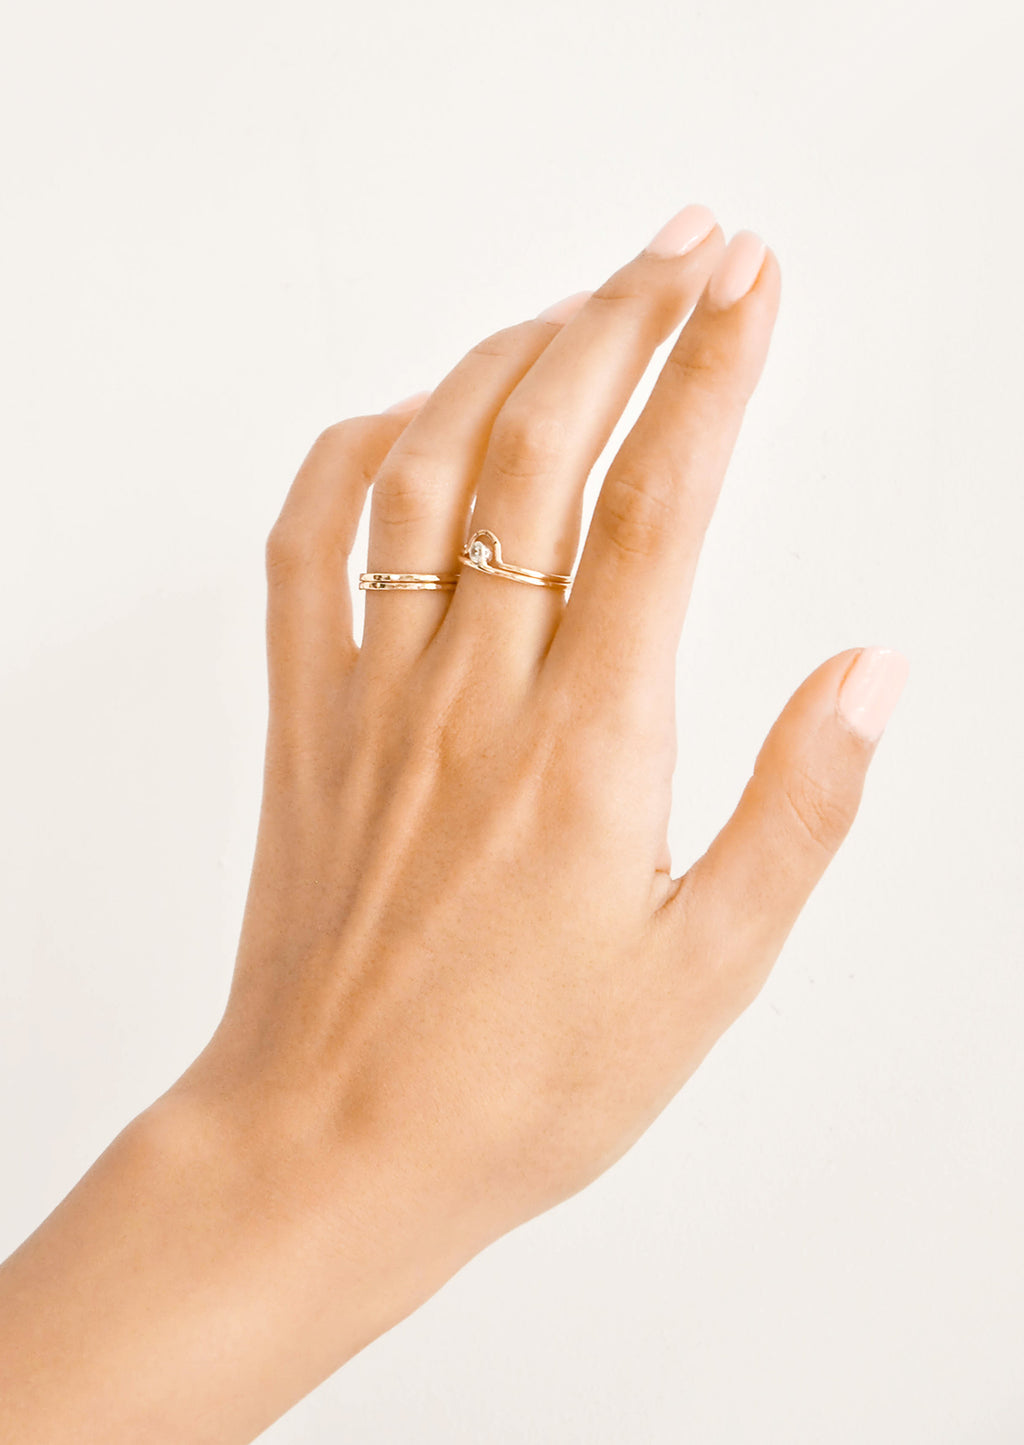 2: Woman's hand with gold rings on her ring and middle fingers.